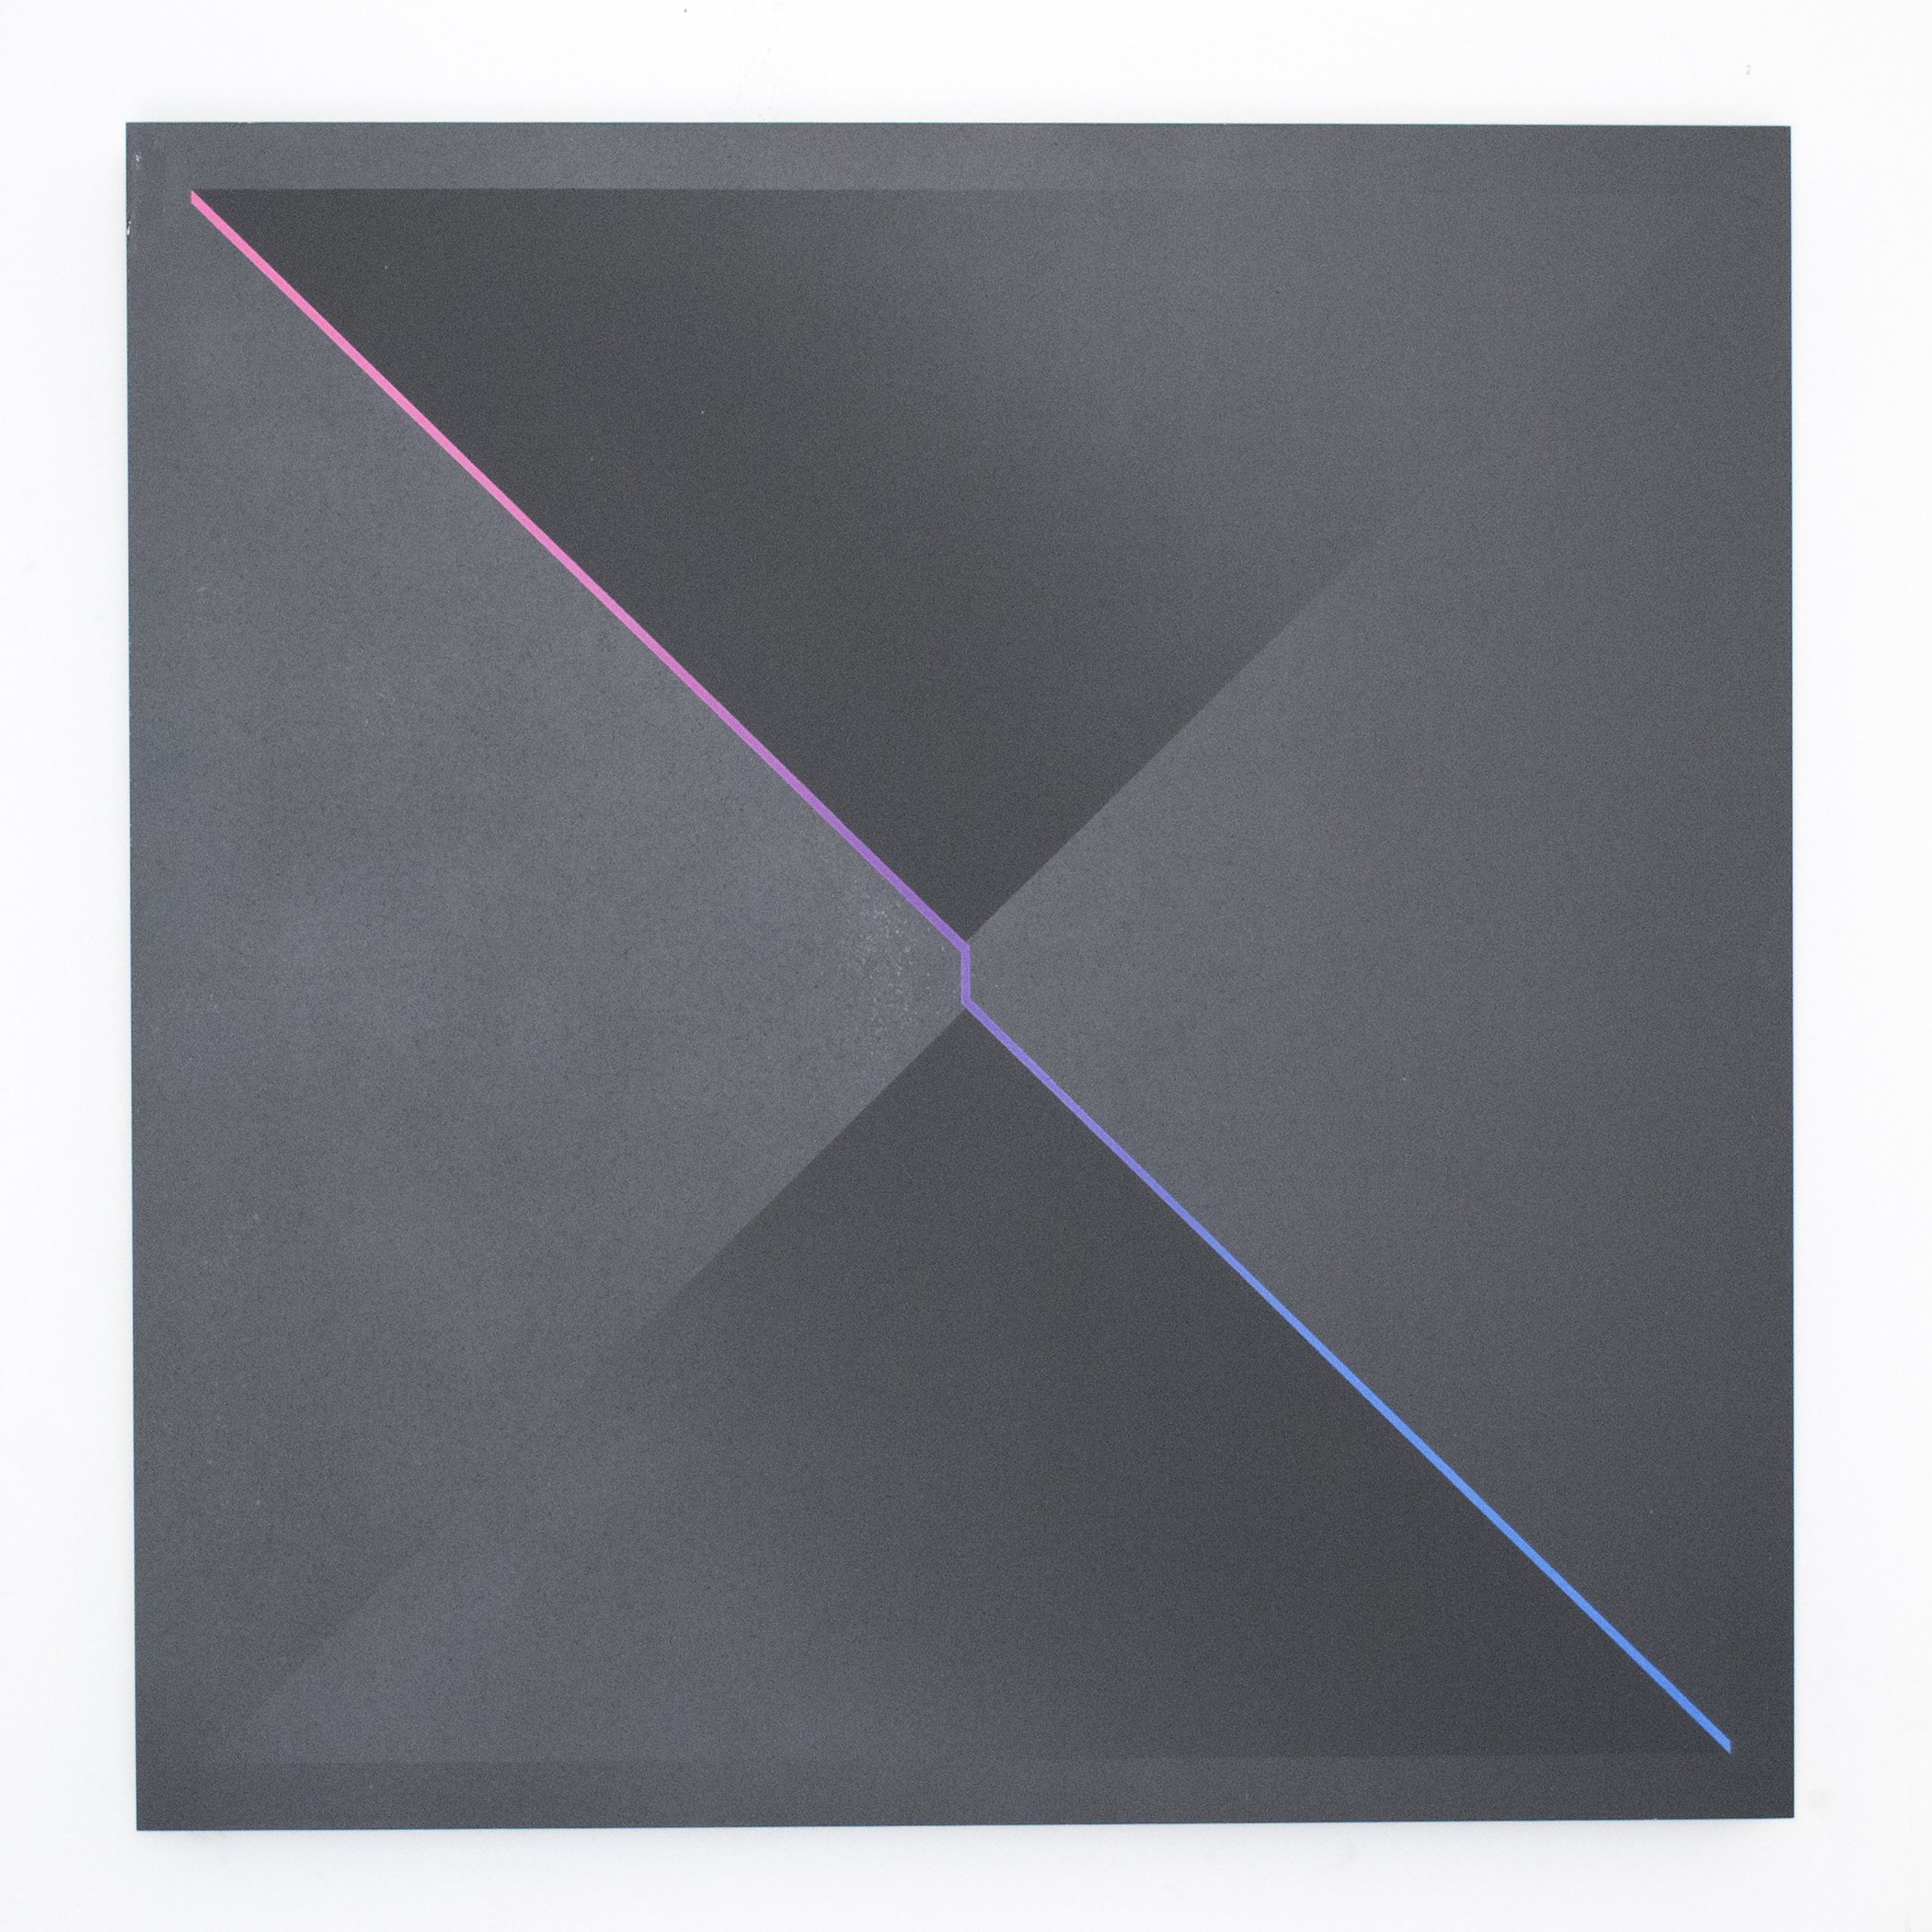 (untitled - two triangles, matte/gloss)